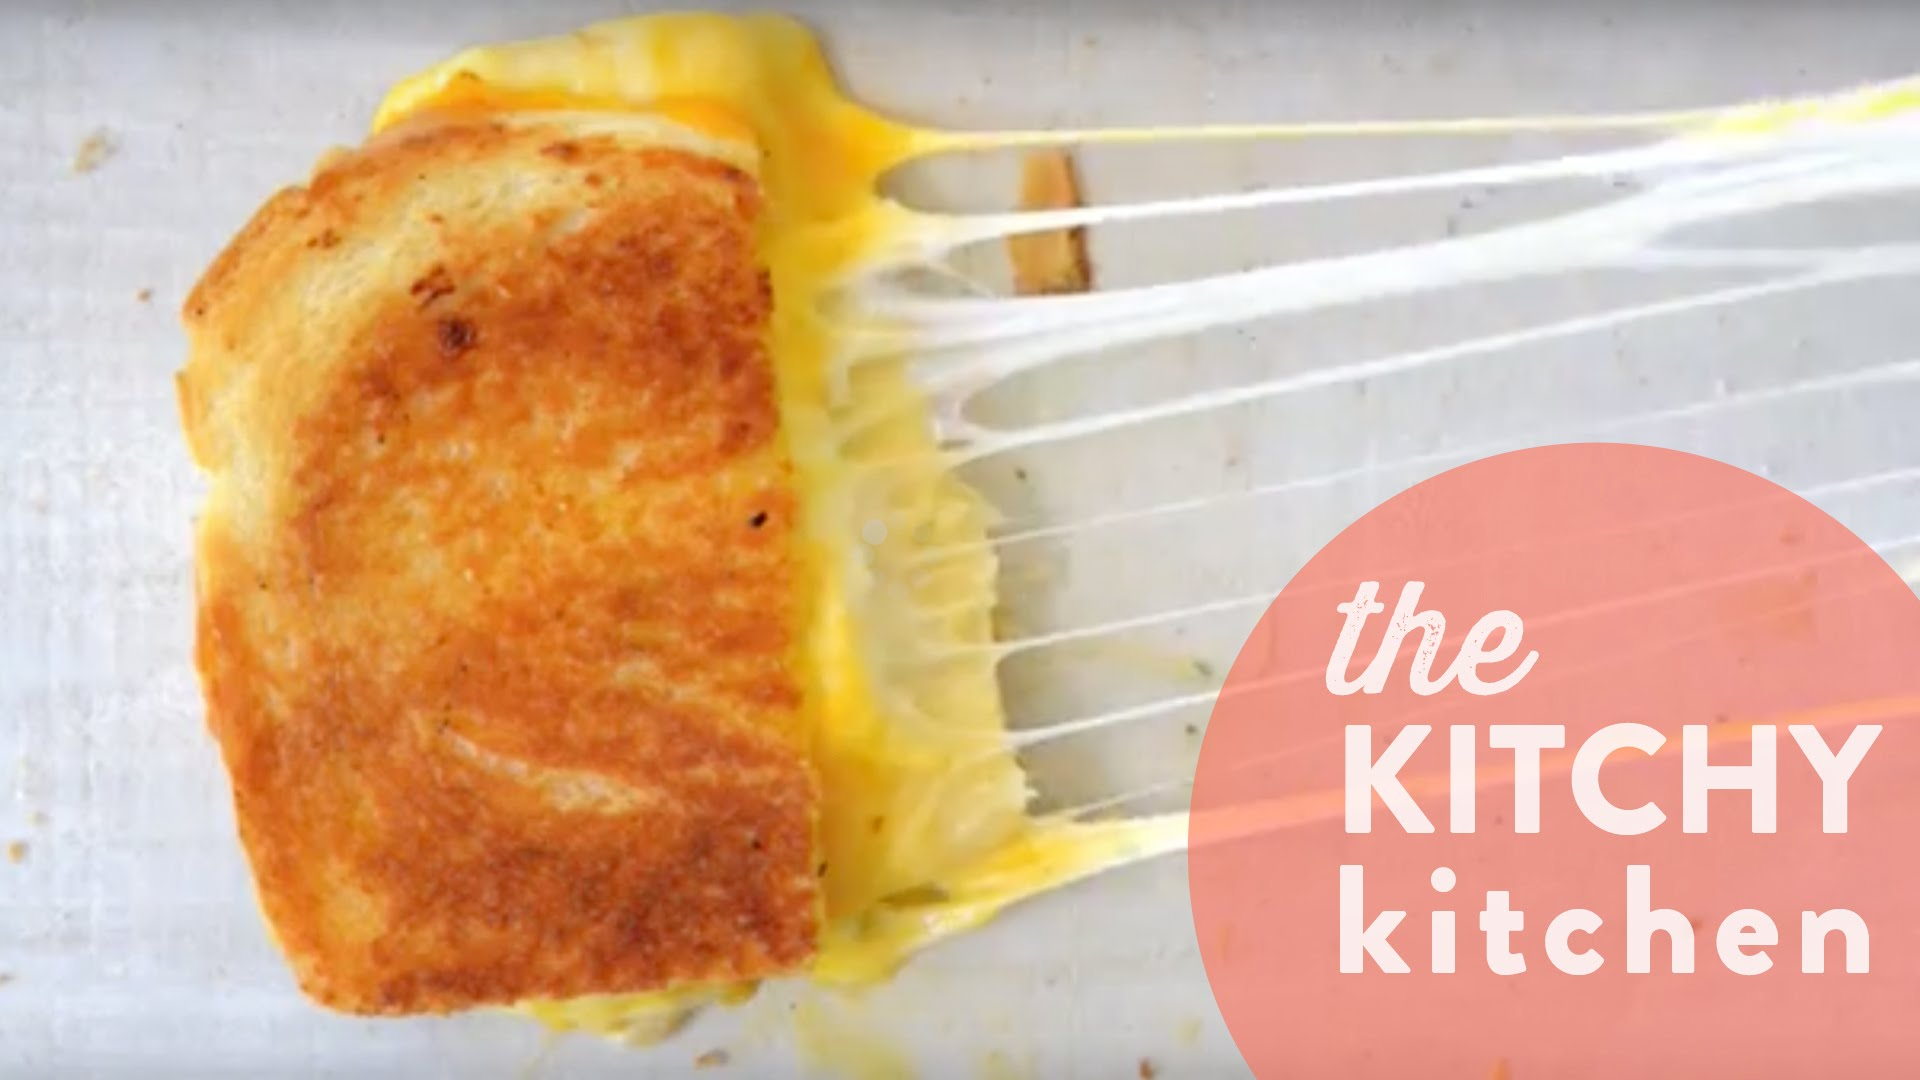 GRILLED CHEESE 9 WAYS  KITCHY HACK  The Kitchy Kitchen